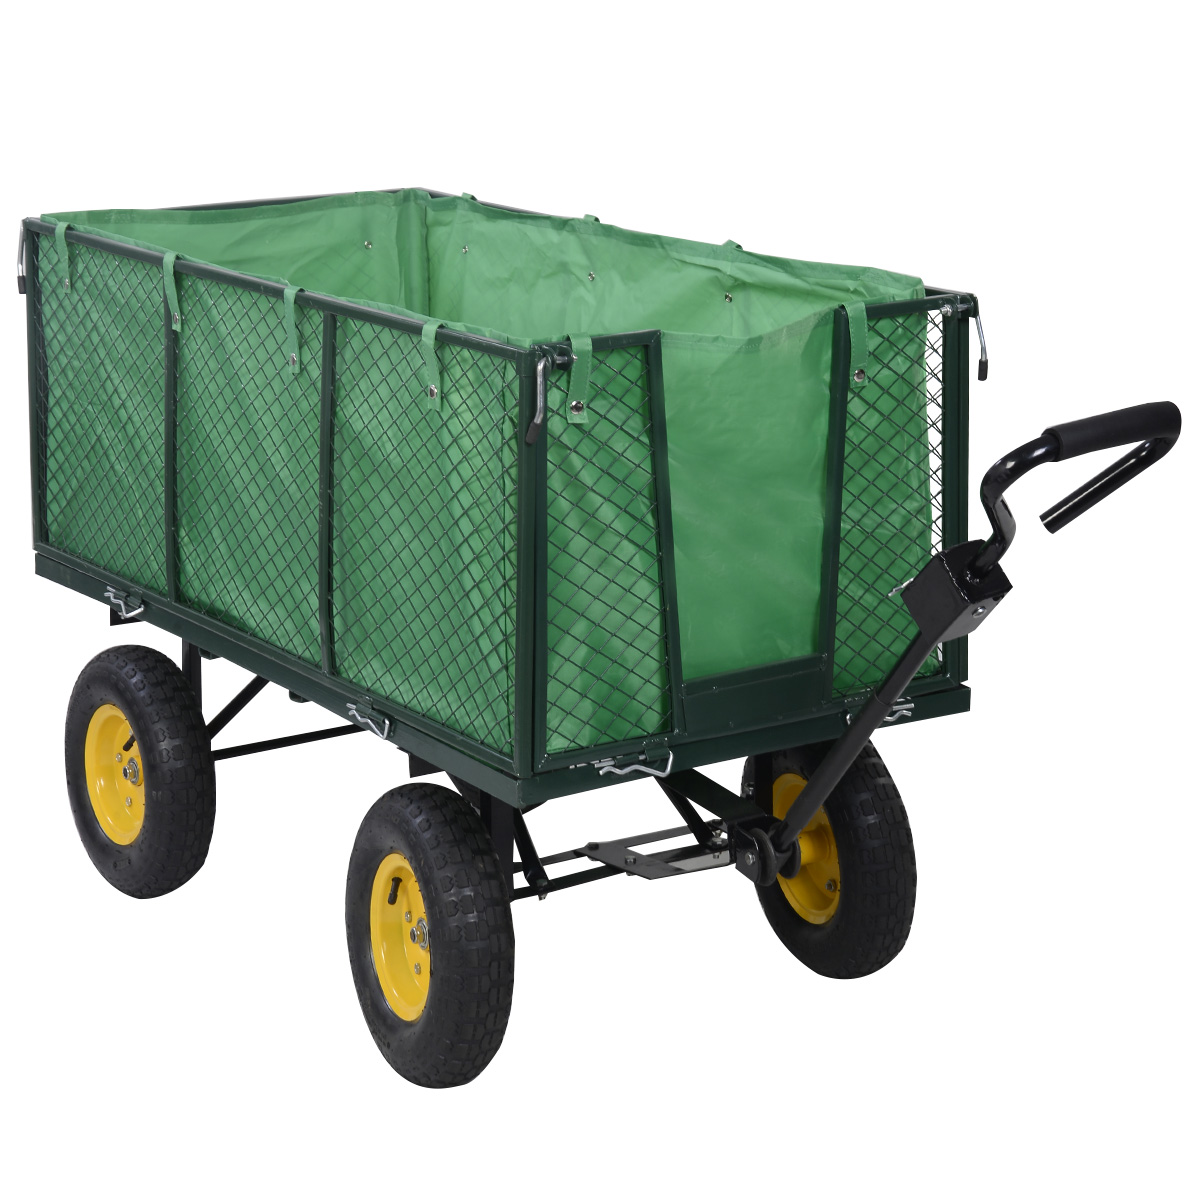 Costway Large Collapsible Utility Wagon Garden Cart Ping Buggy Yard Beach Heavy Duty